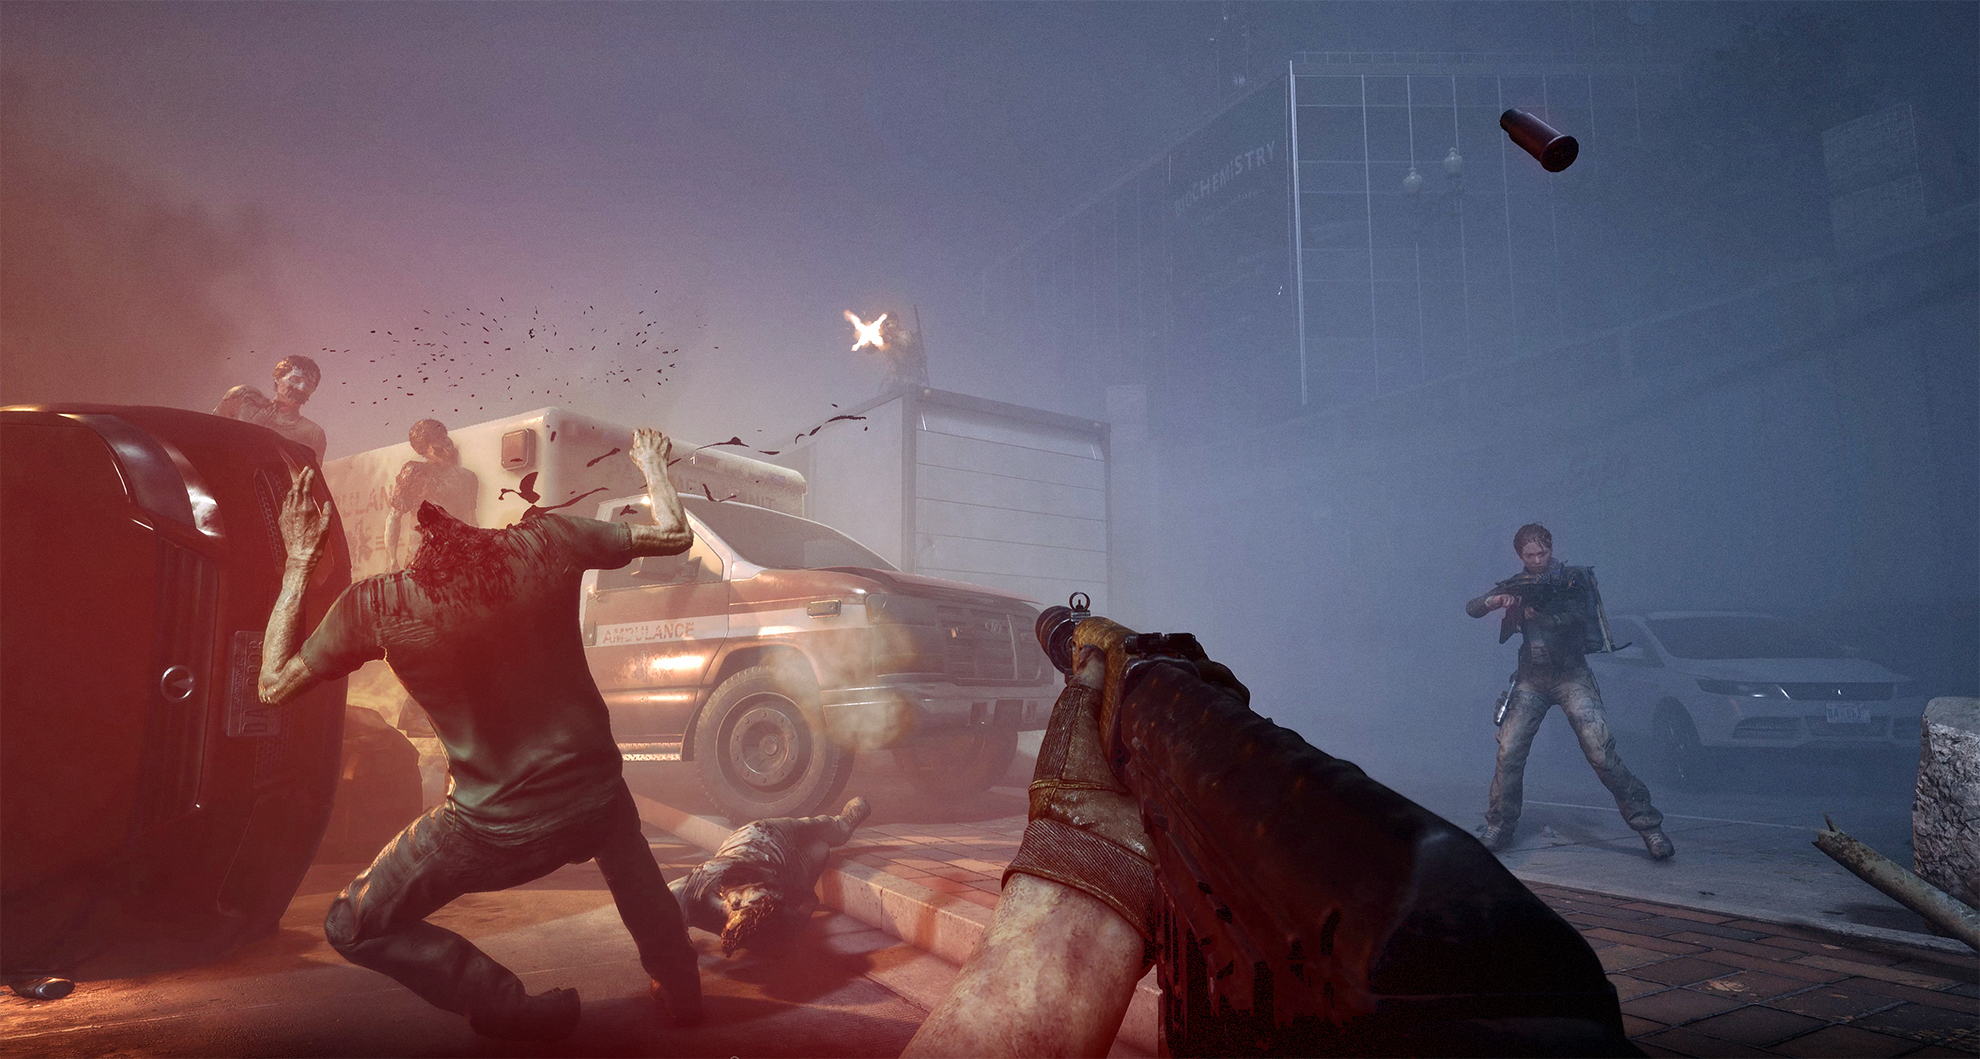 Low sales revenue from Overkill's The Walking Dead means Starbreeze is cutting costs